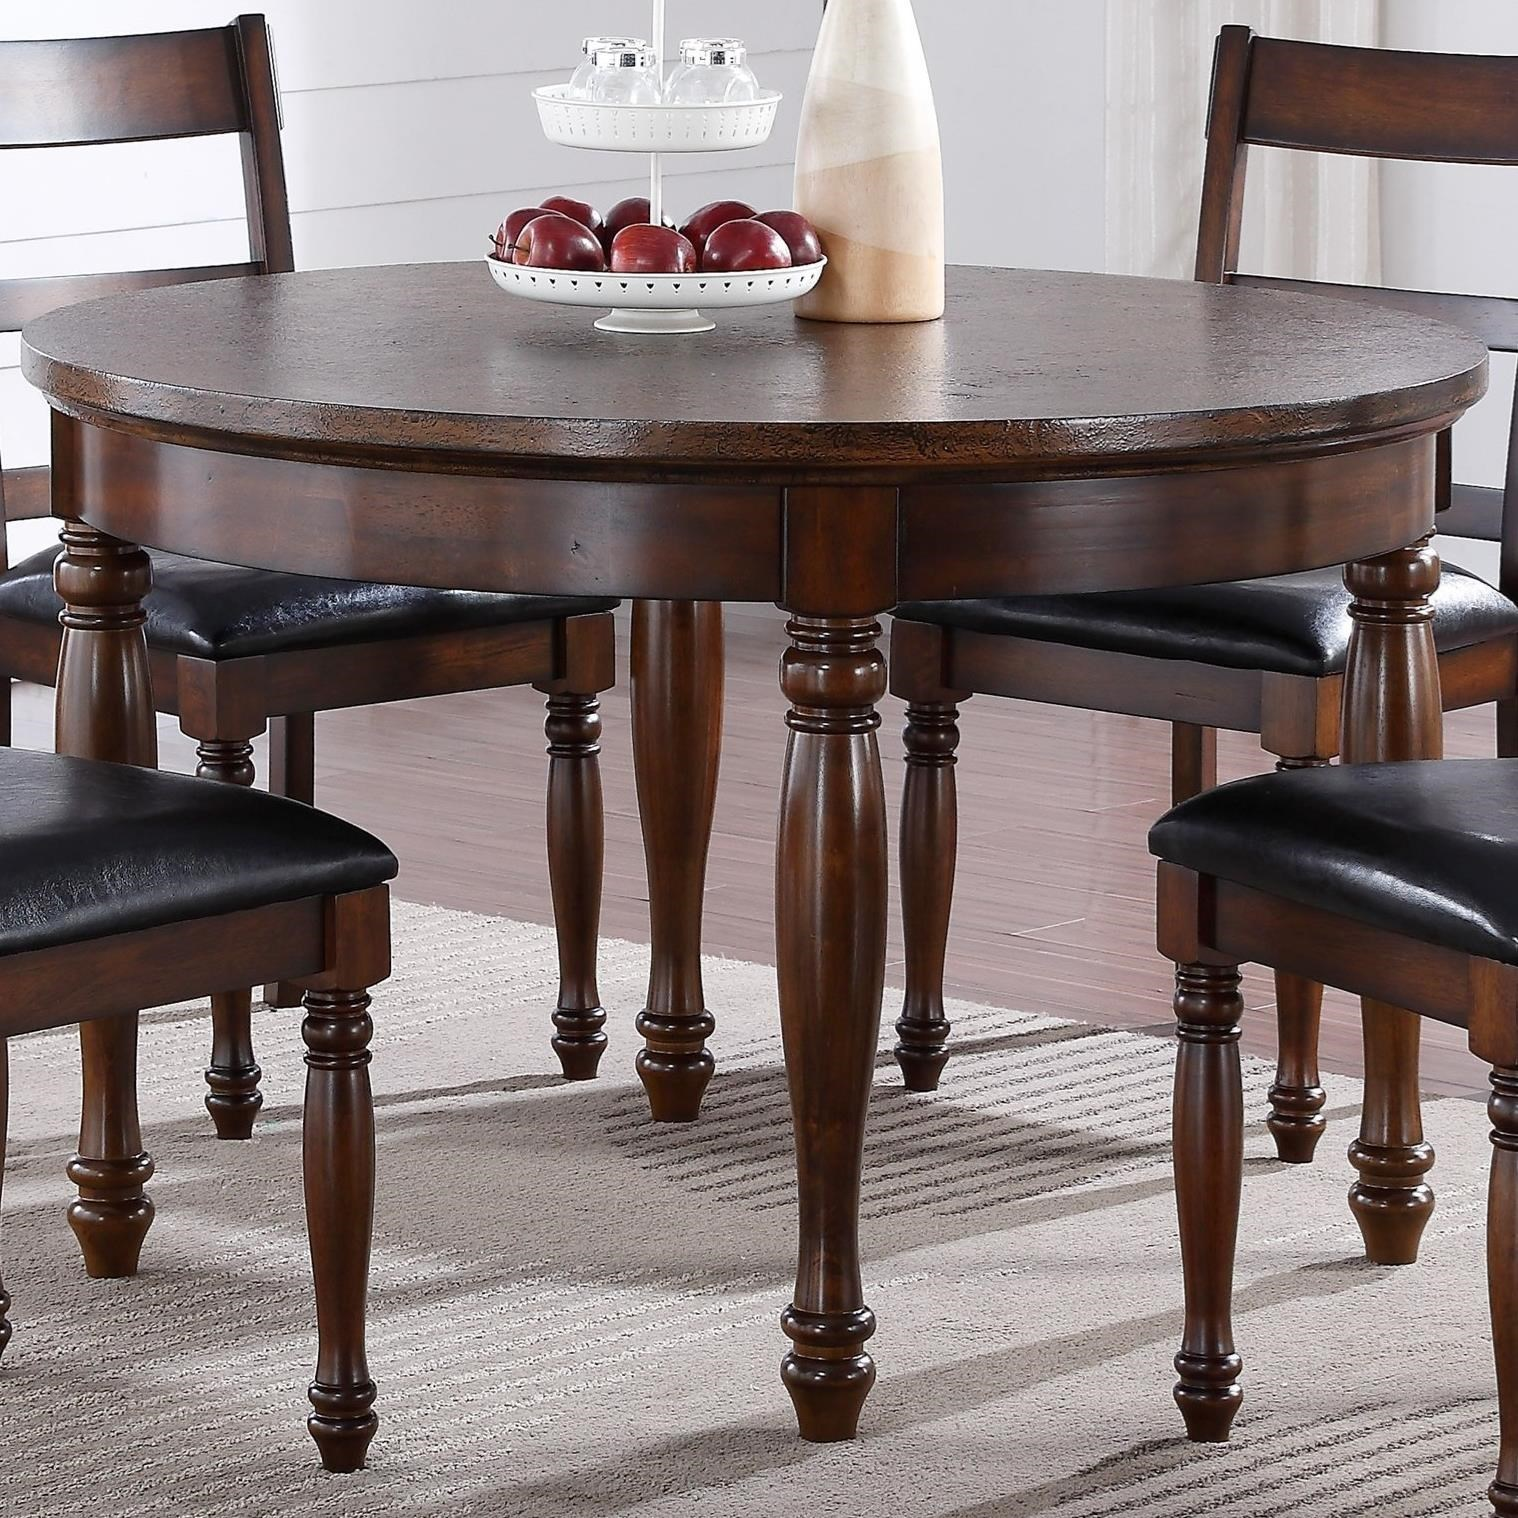 "Legends Furniture Breckenridge Breckenridge 48"" Round Table - Item Number: ZBRG-8080"